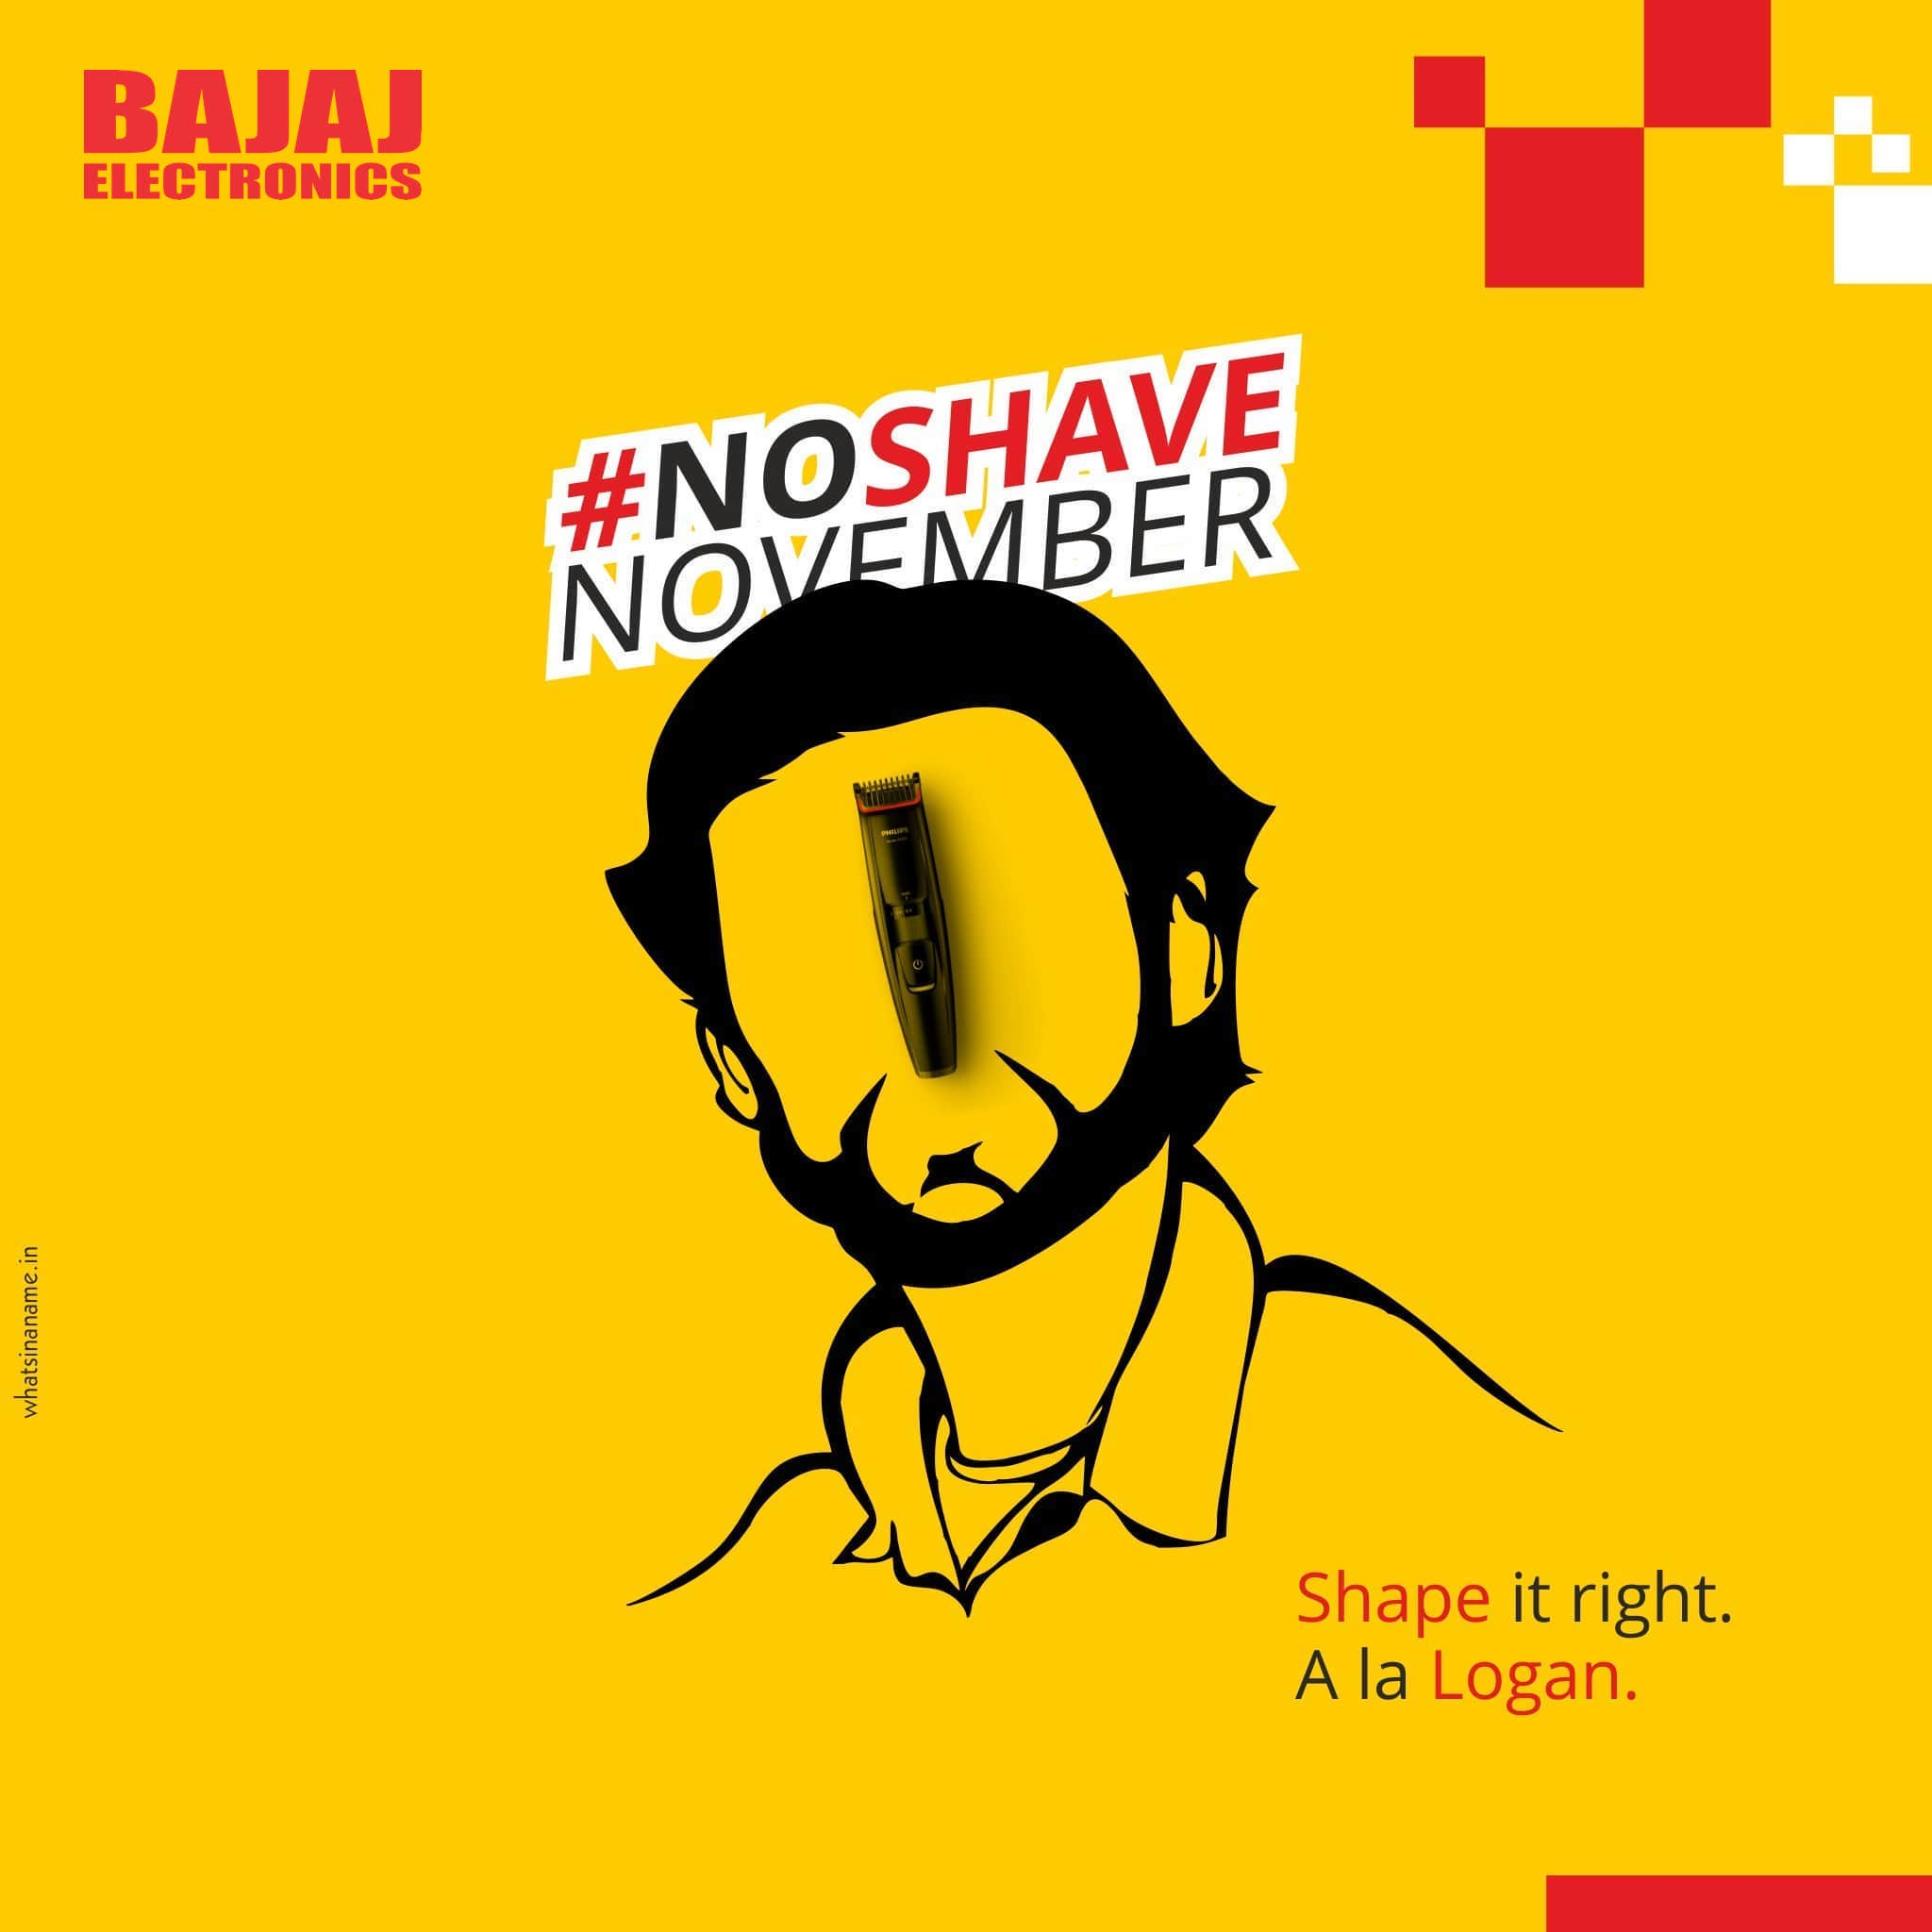 a3180x3pdhd-no-shave-november,-best-ad,-what's-in-a-name-creatives,-bajaj-electronics,-4